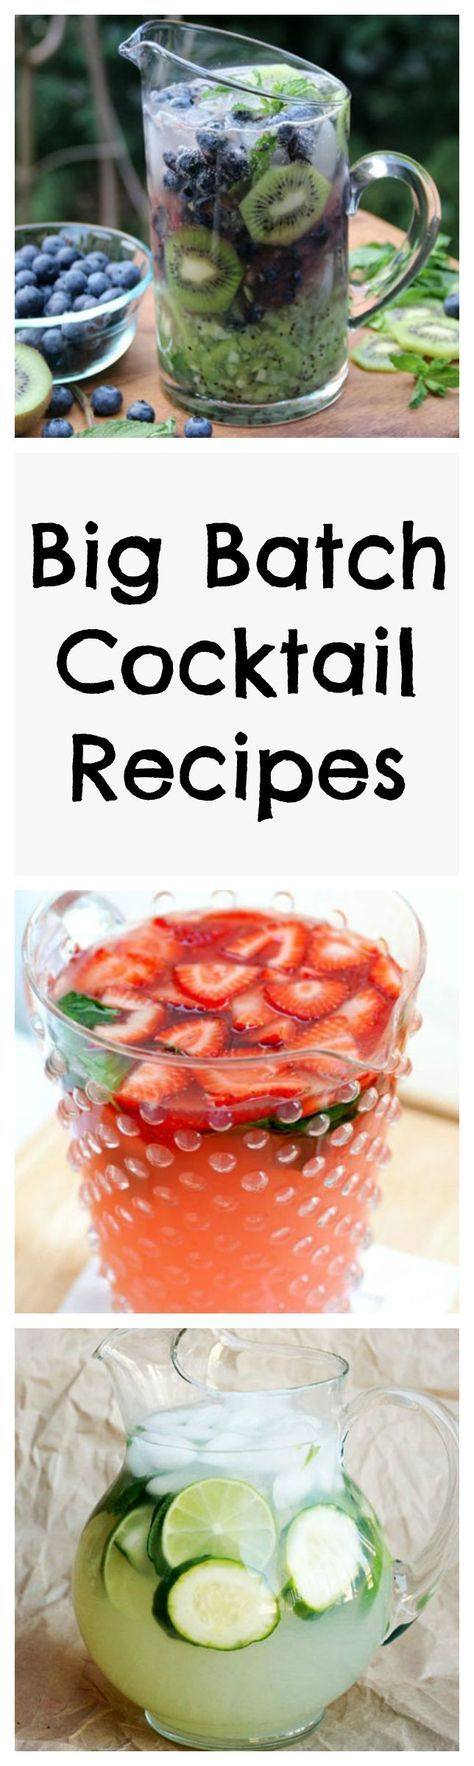 Big Batch Crowd Cocktail Recipes   Quench your thirst with these picture-perfect big batch crowd-pleasing cocktails!